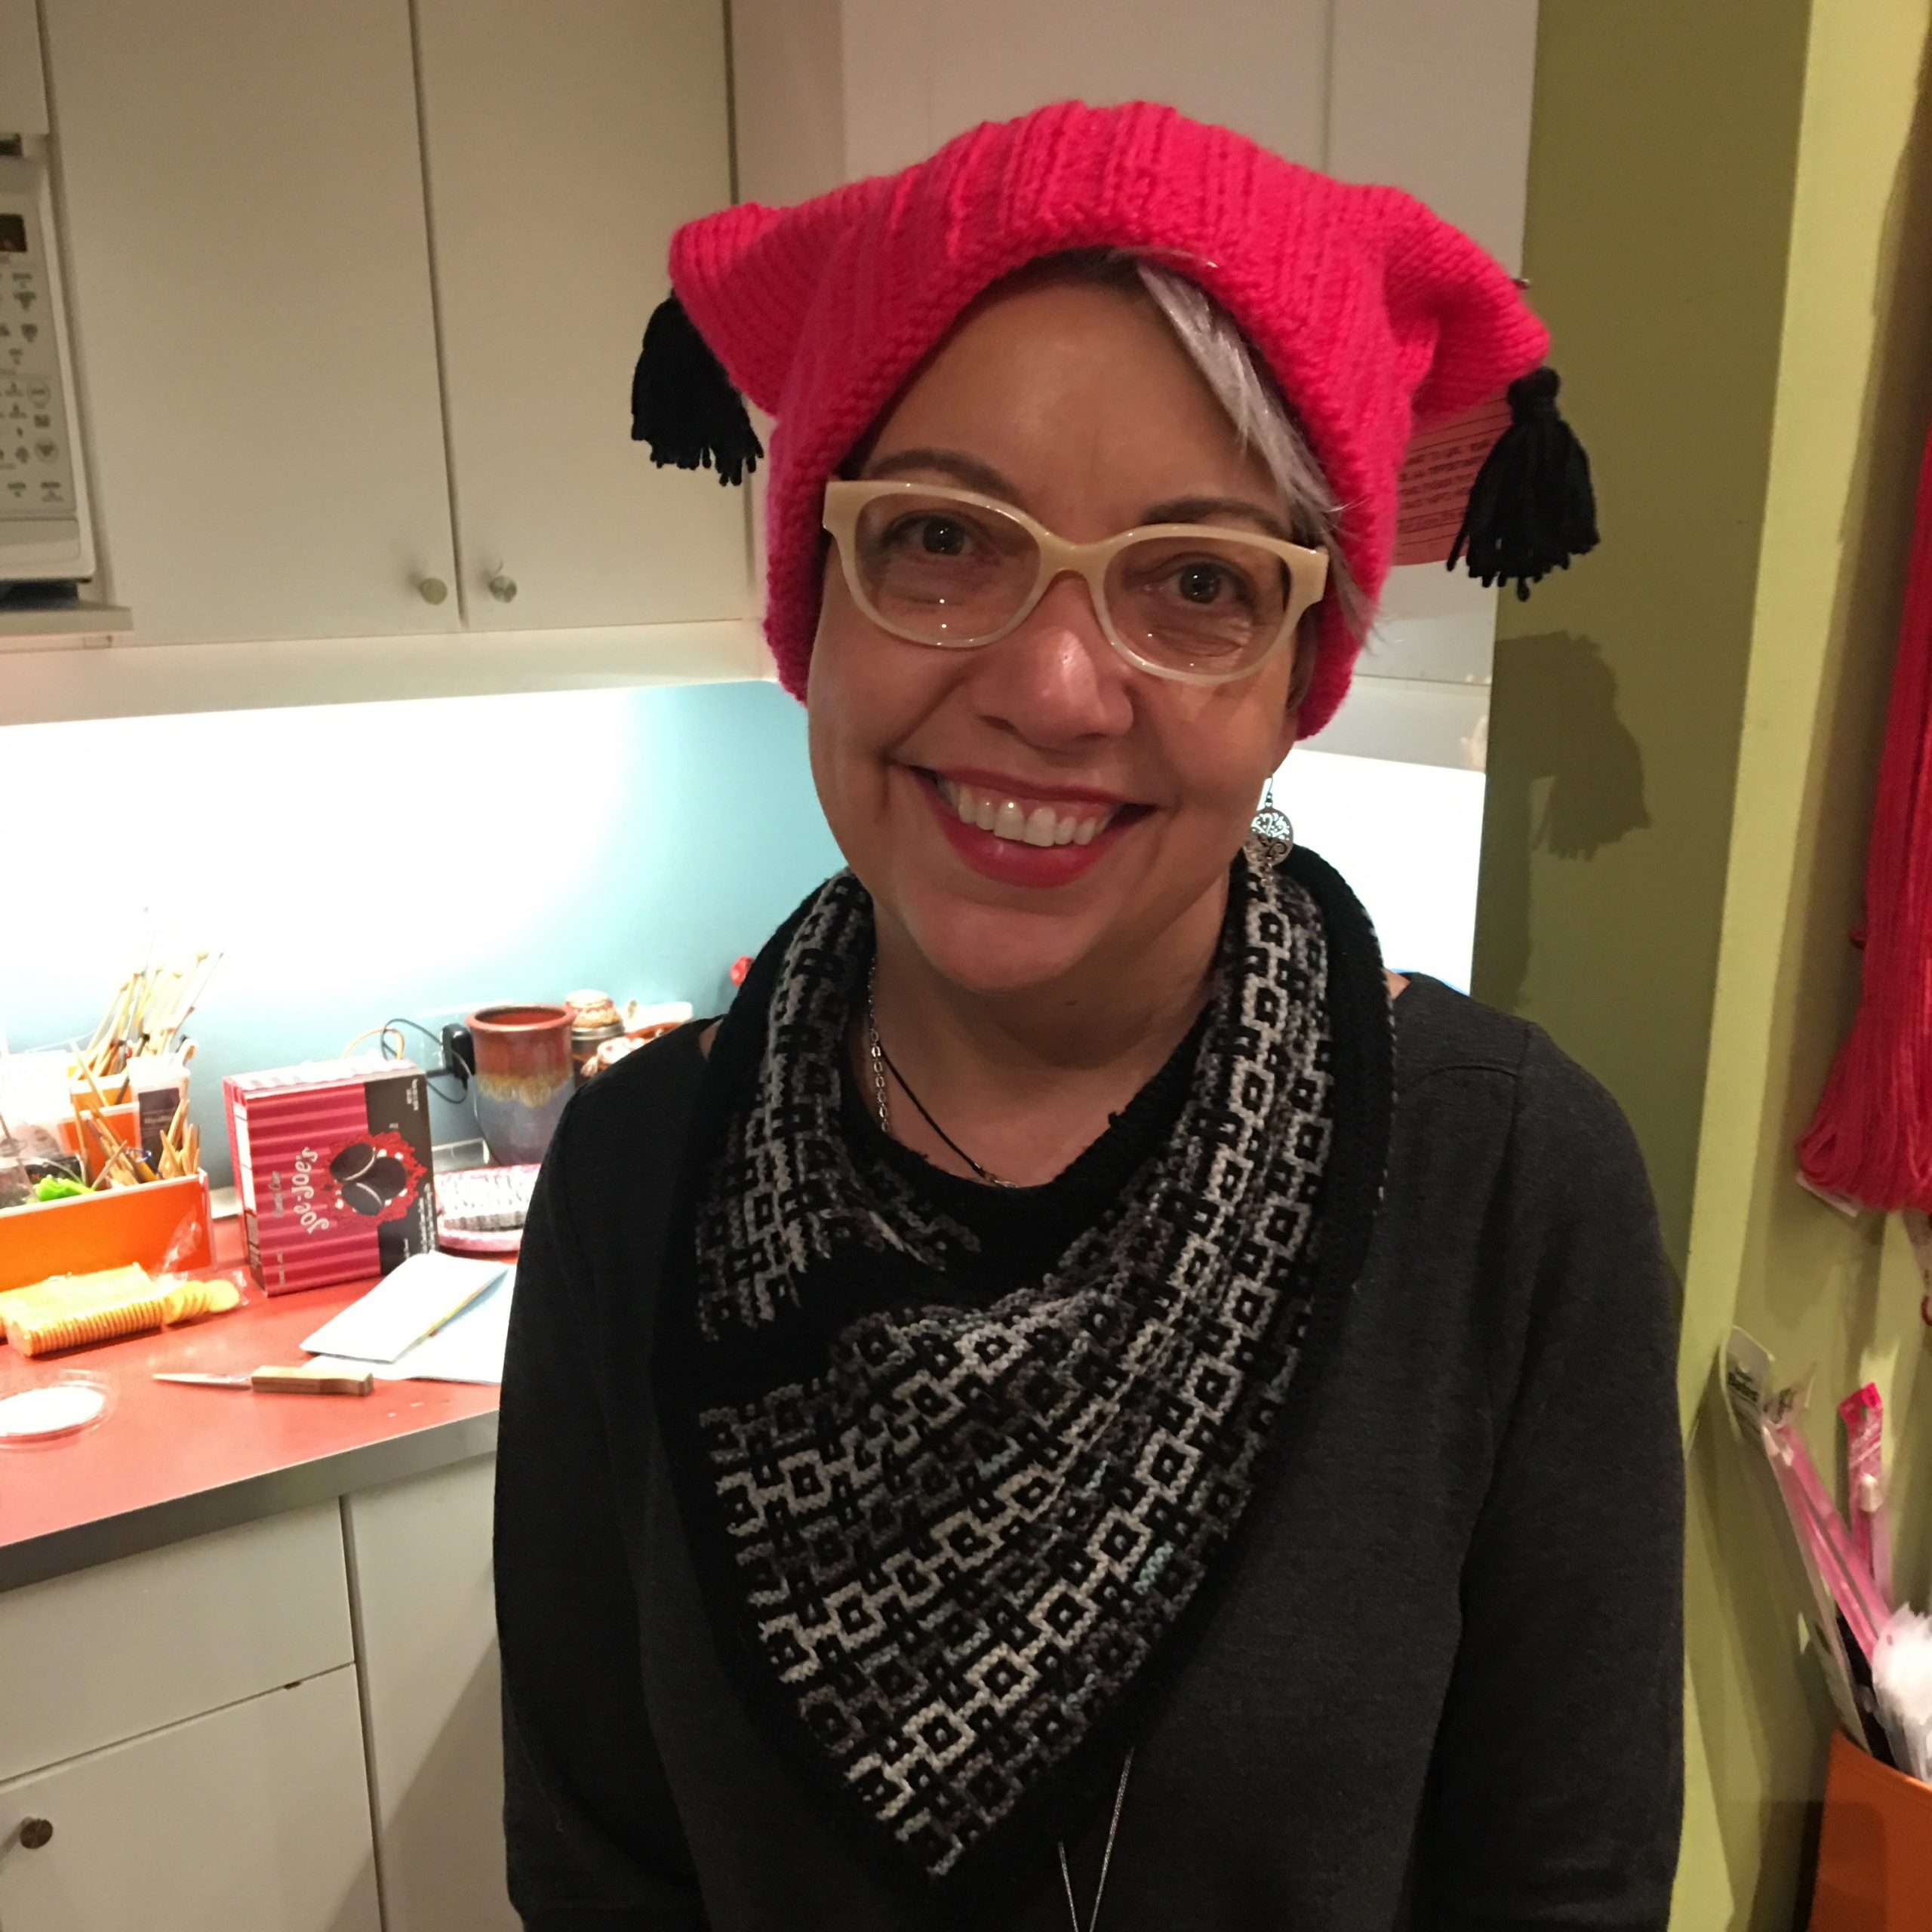 Sister Arts Studio owner Donna Palicka sports her pussyhat.